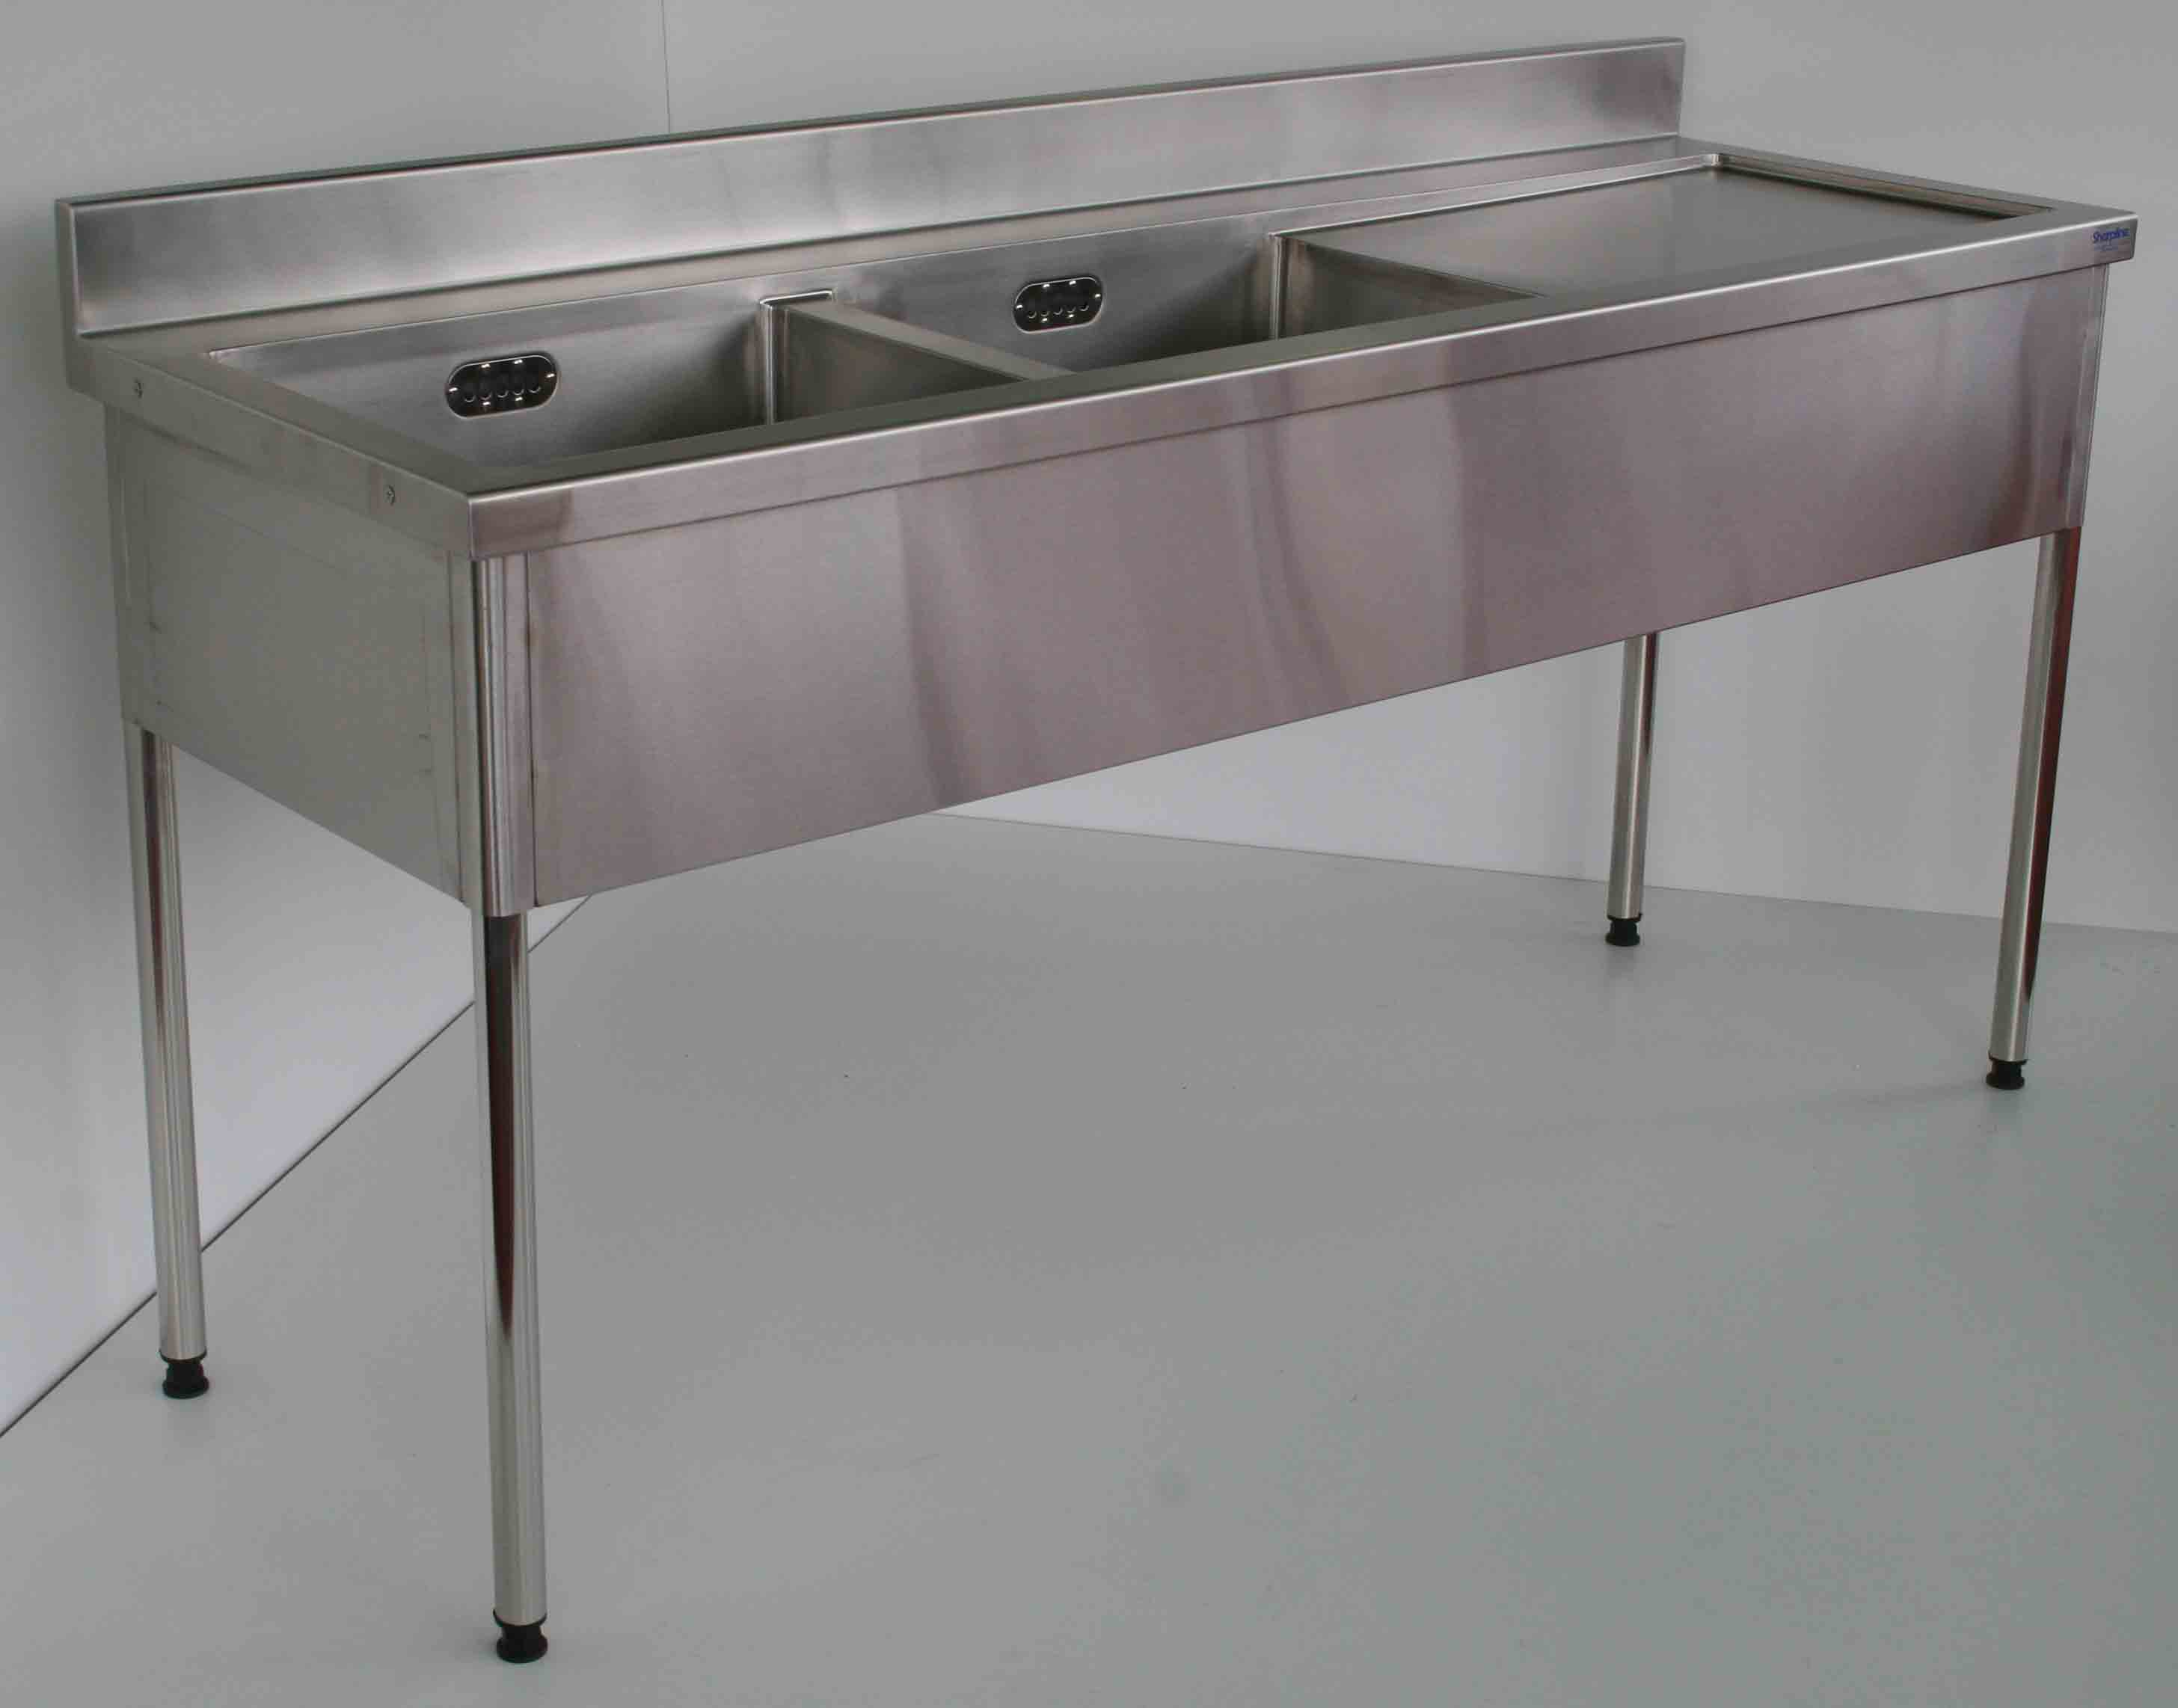 Double Bowl Sink Bench LH 900x1500x600 - Click to enlarge